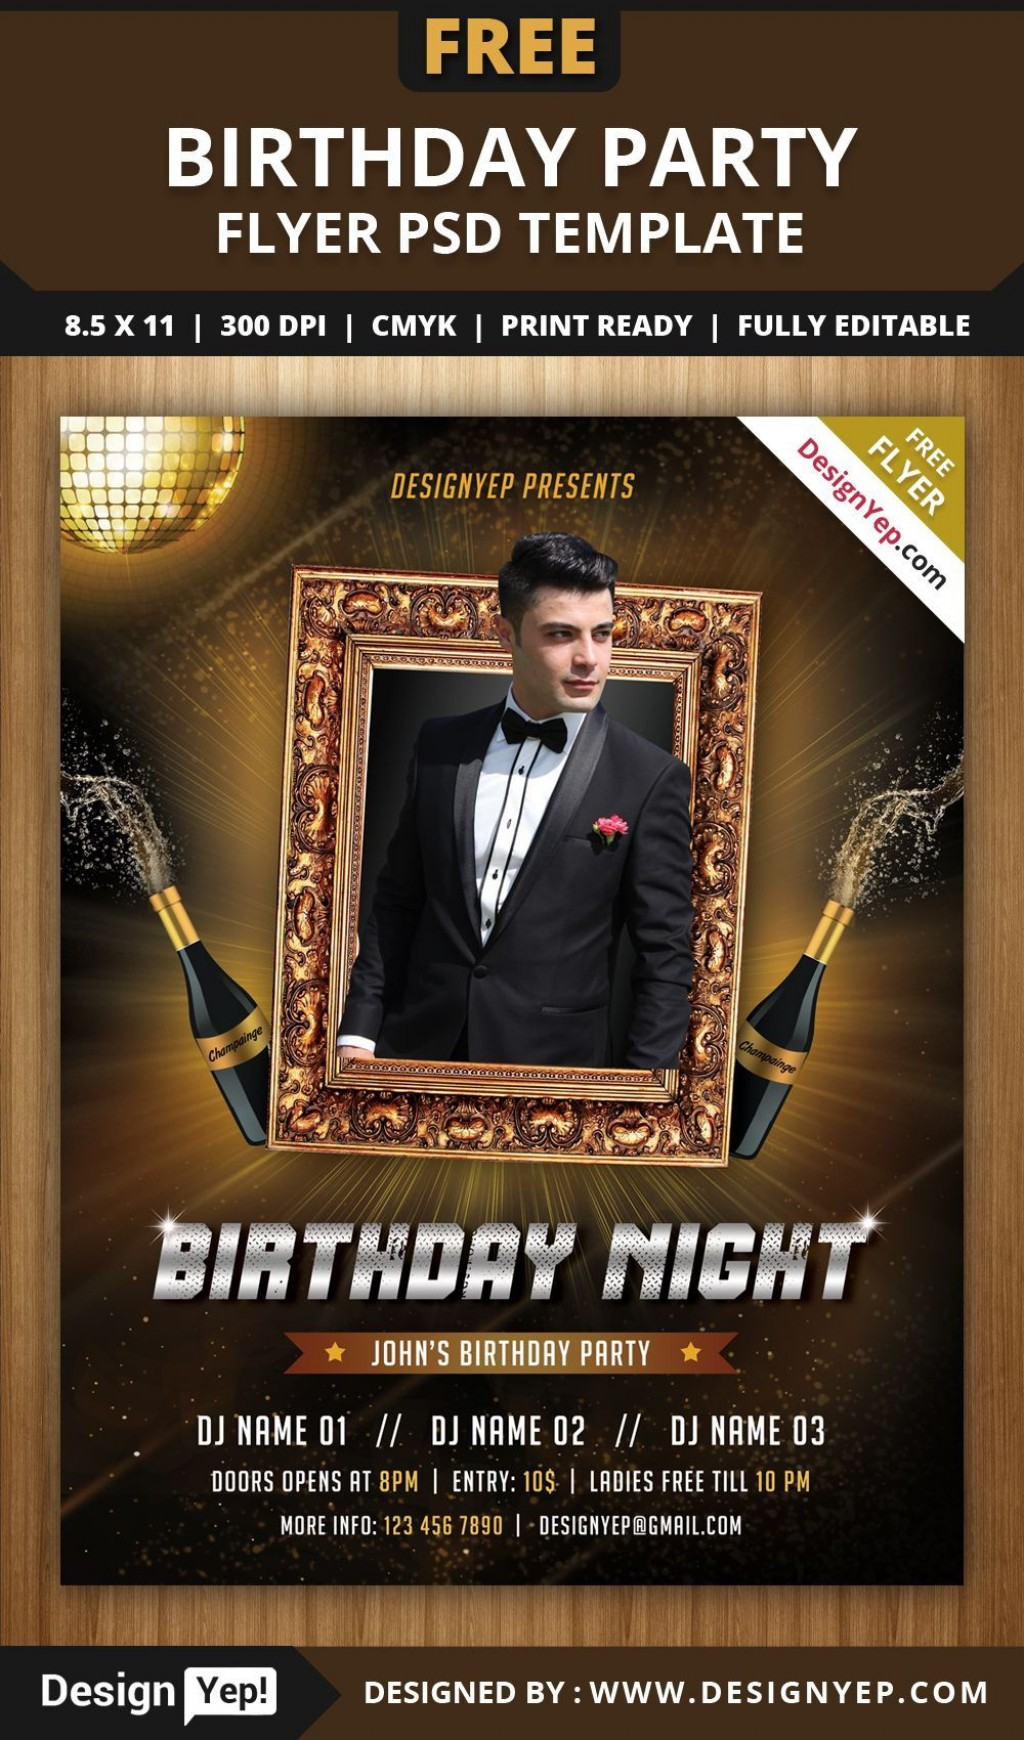 002 Exceptional Birthday Party Invitation Flyer Template Free Download Picture Large